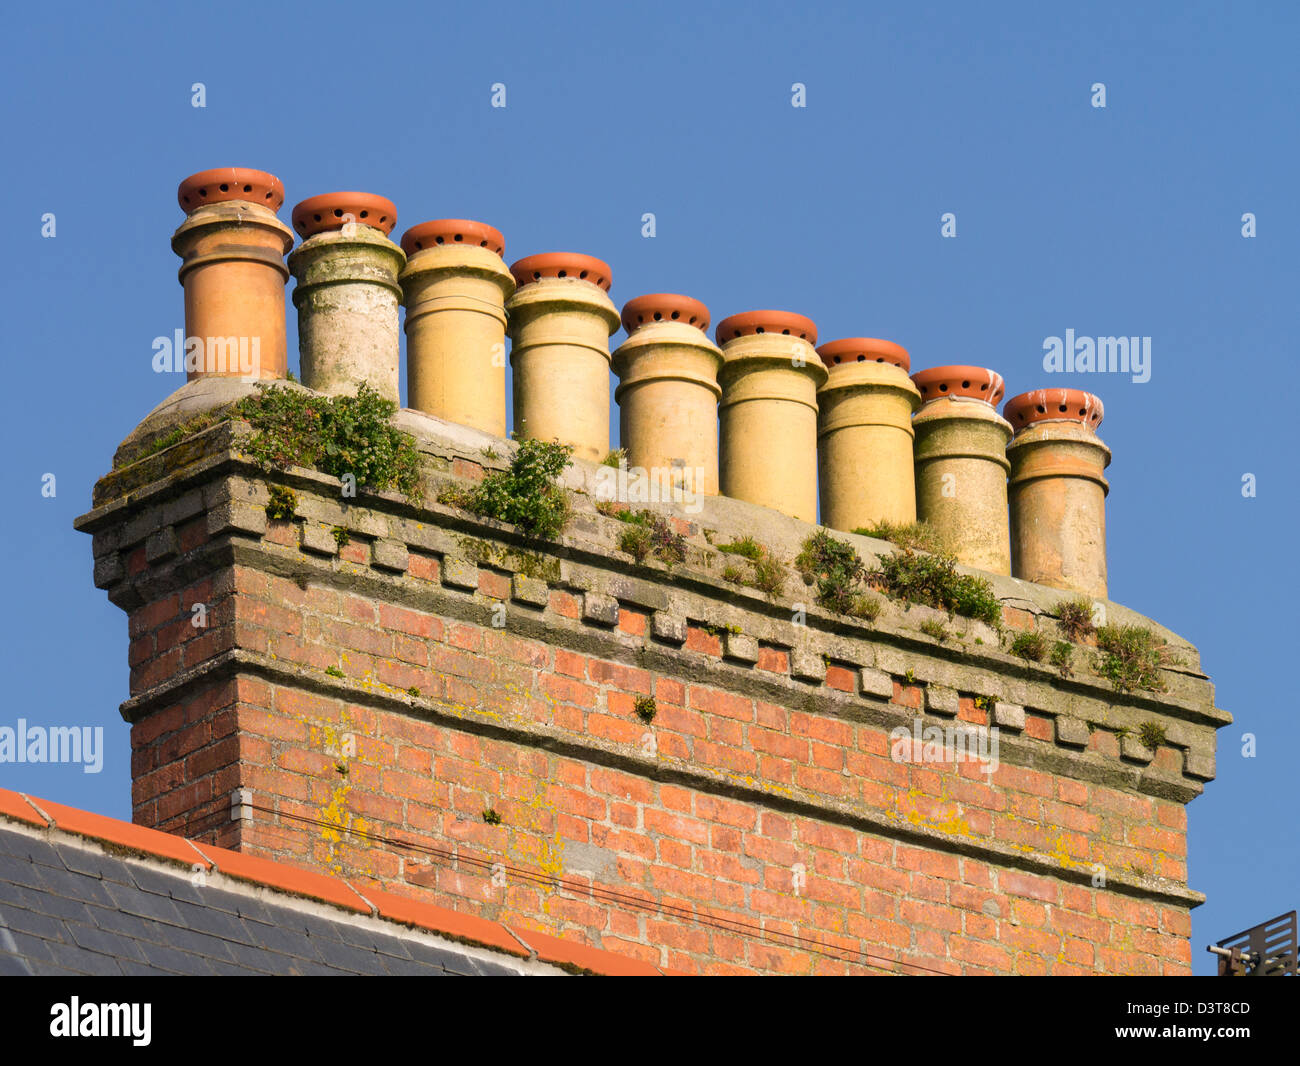 Row of chimney pots on a house roof in Penzance, Cornwall UK. - Stock Image